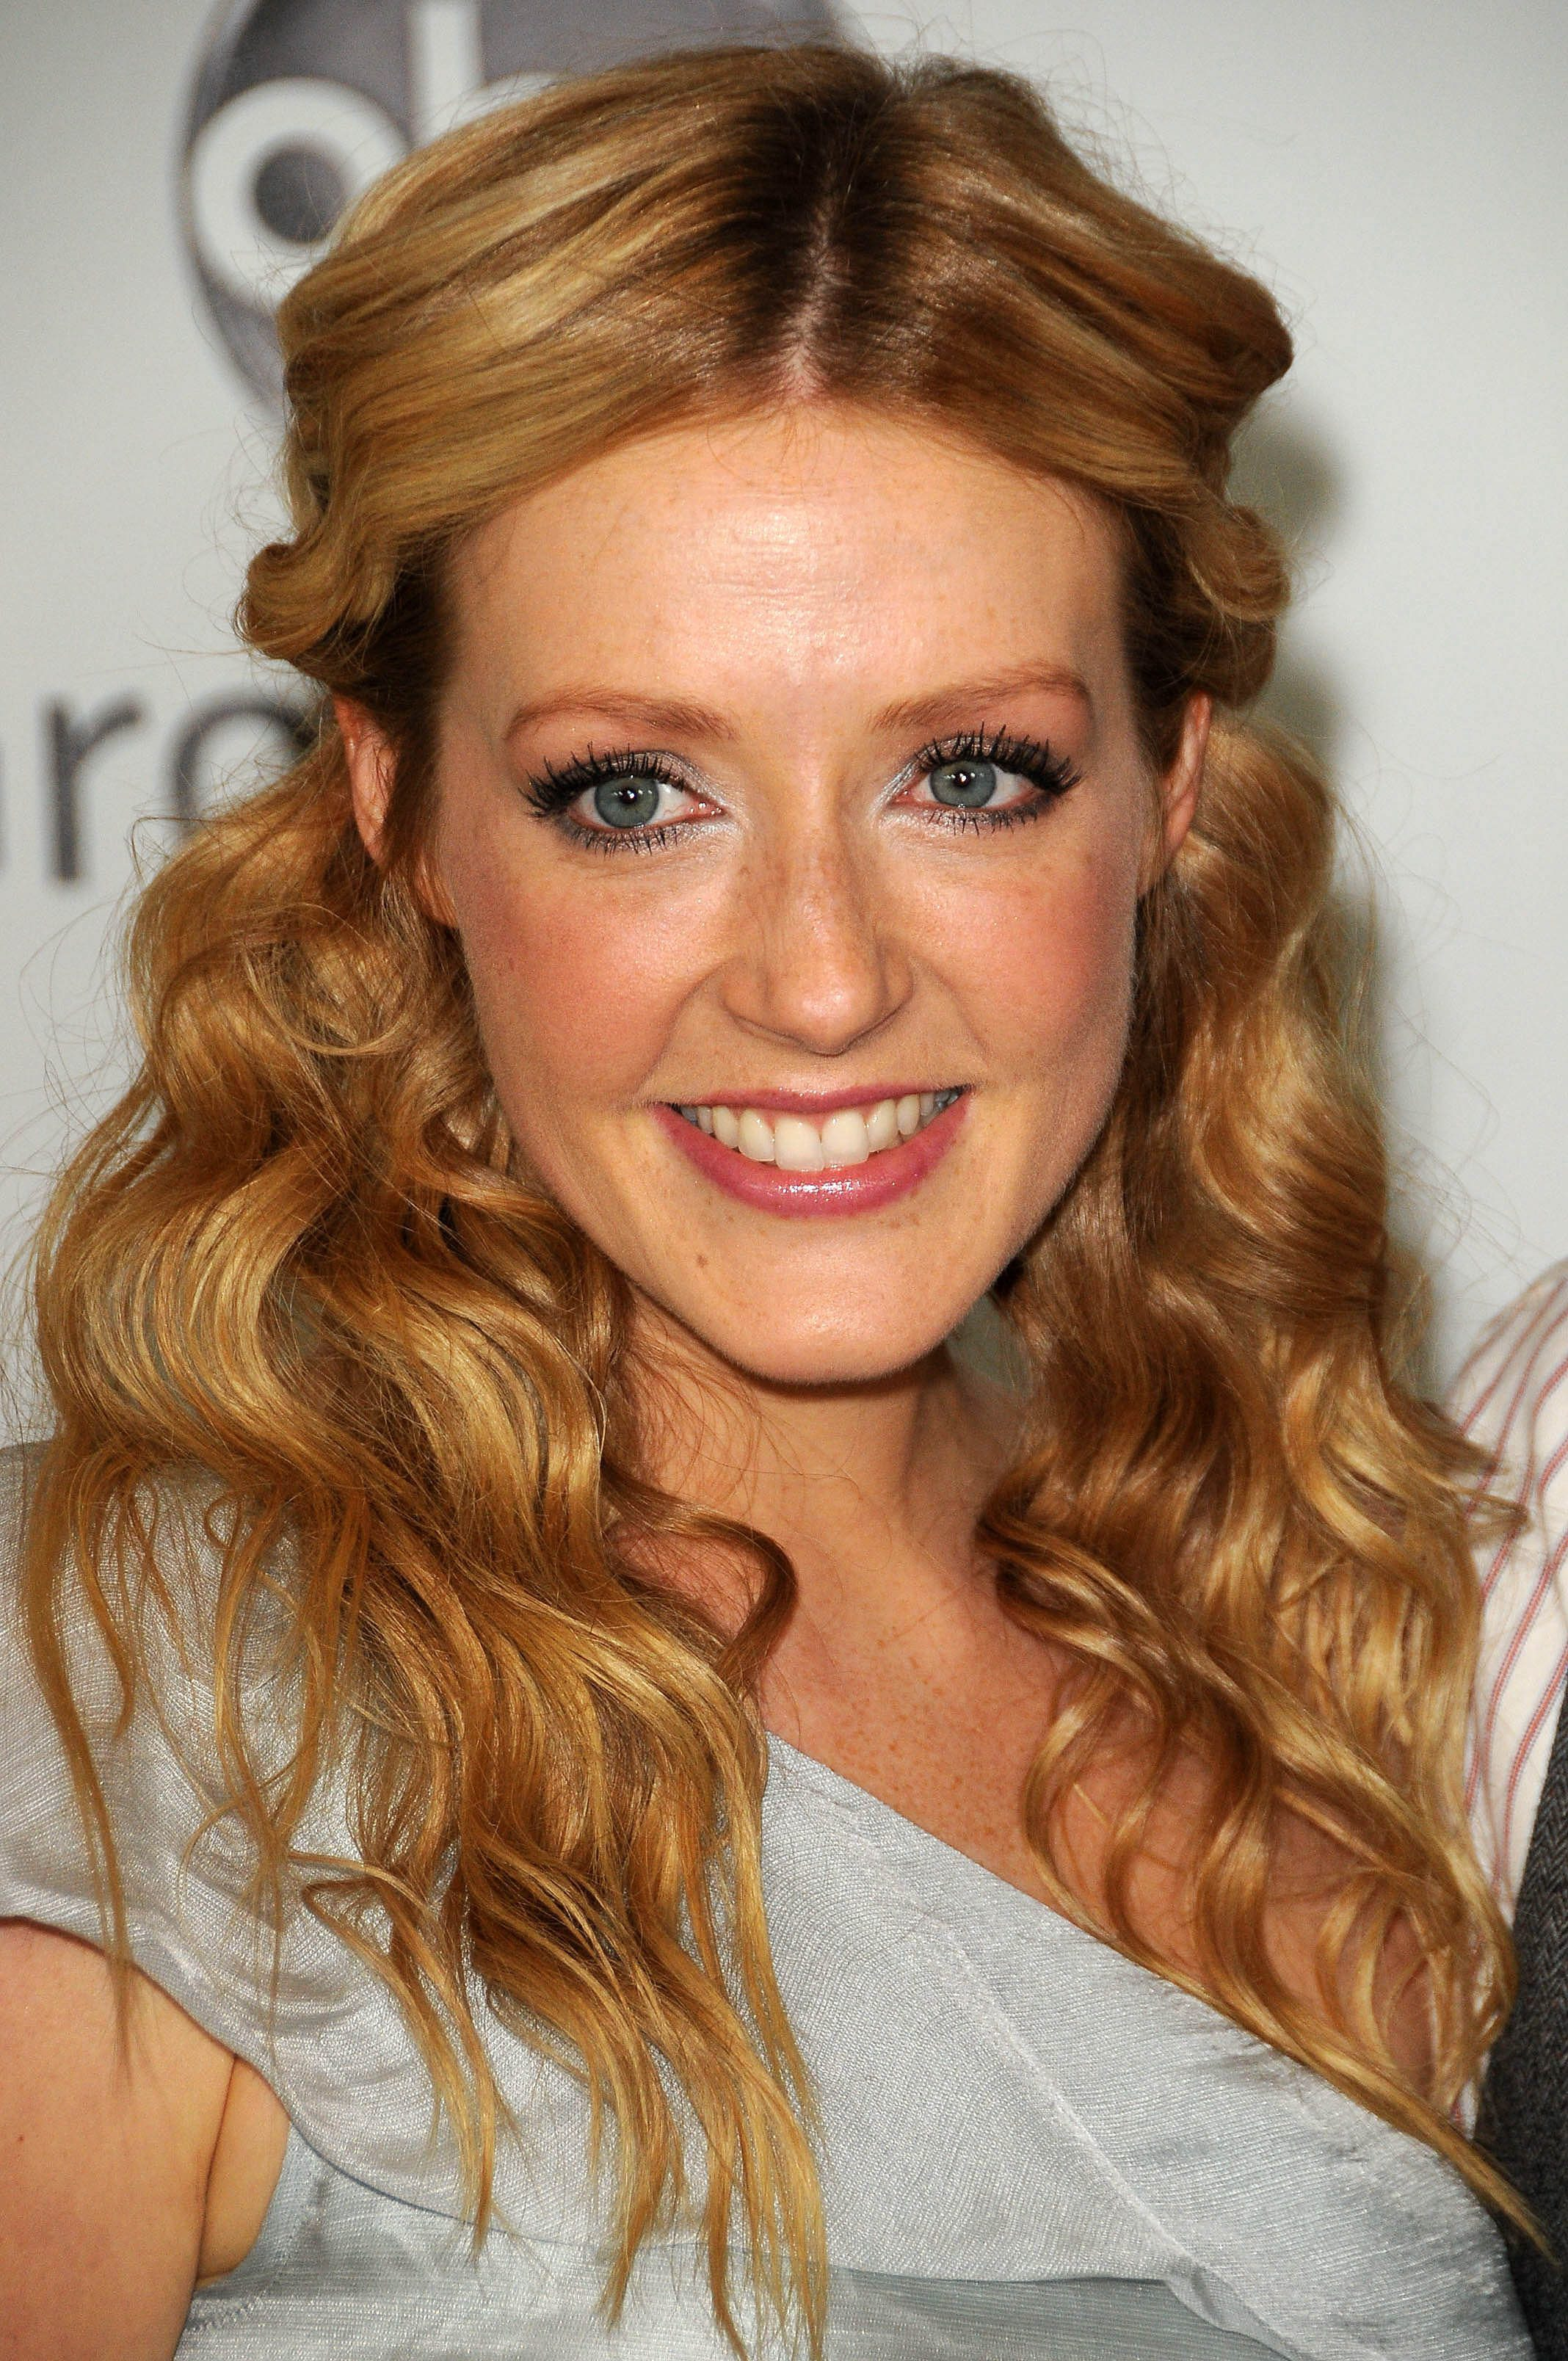 Jennifer Finnigan with That Middle Parted Top